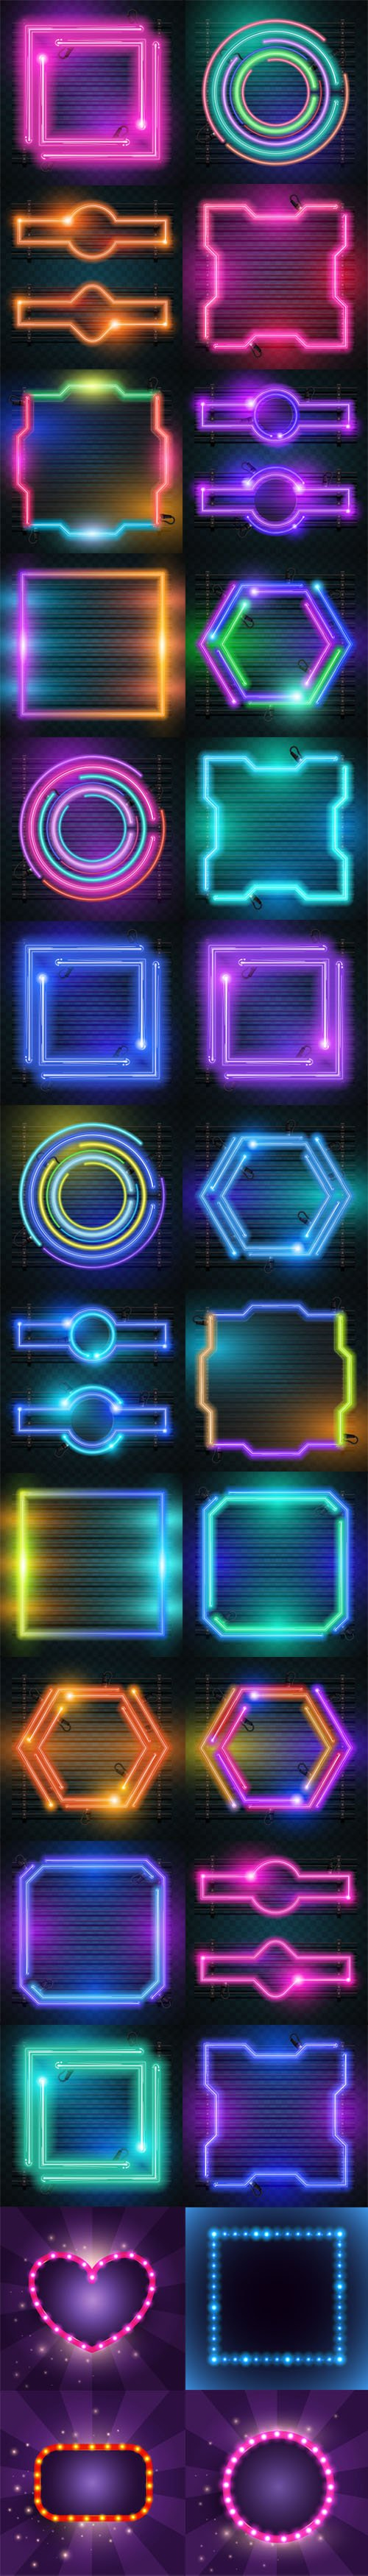 Neon Backgrounds Vector Collection